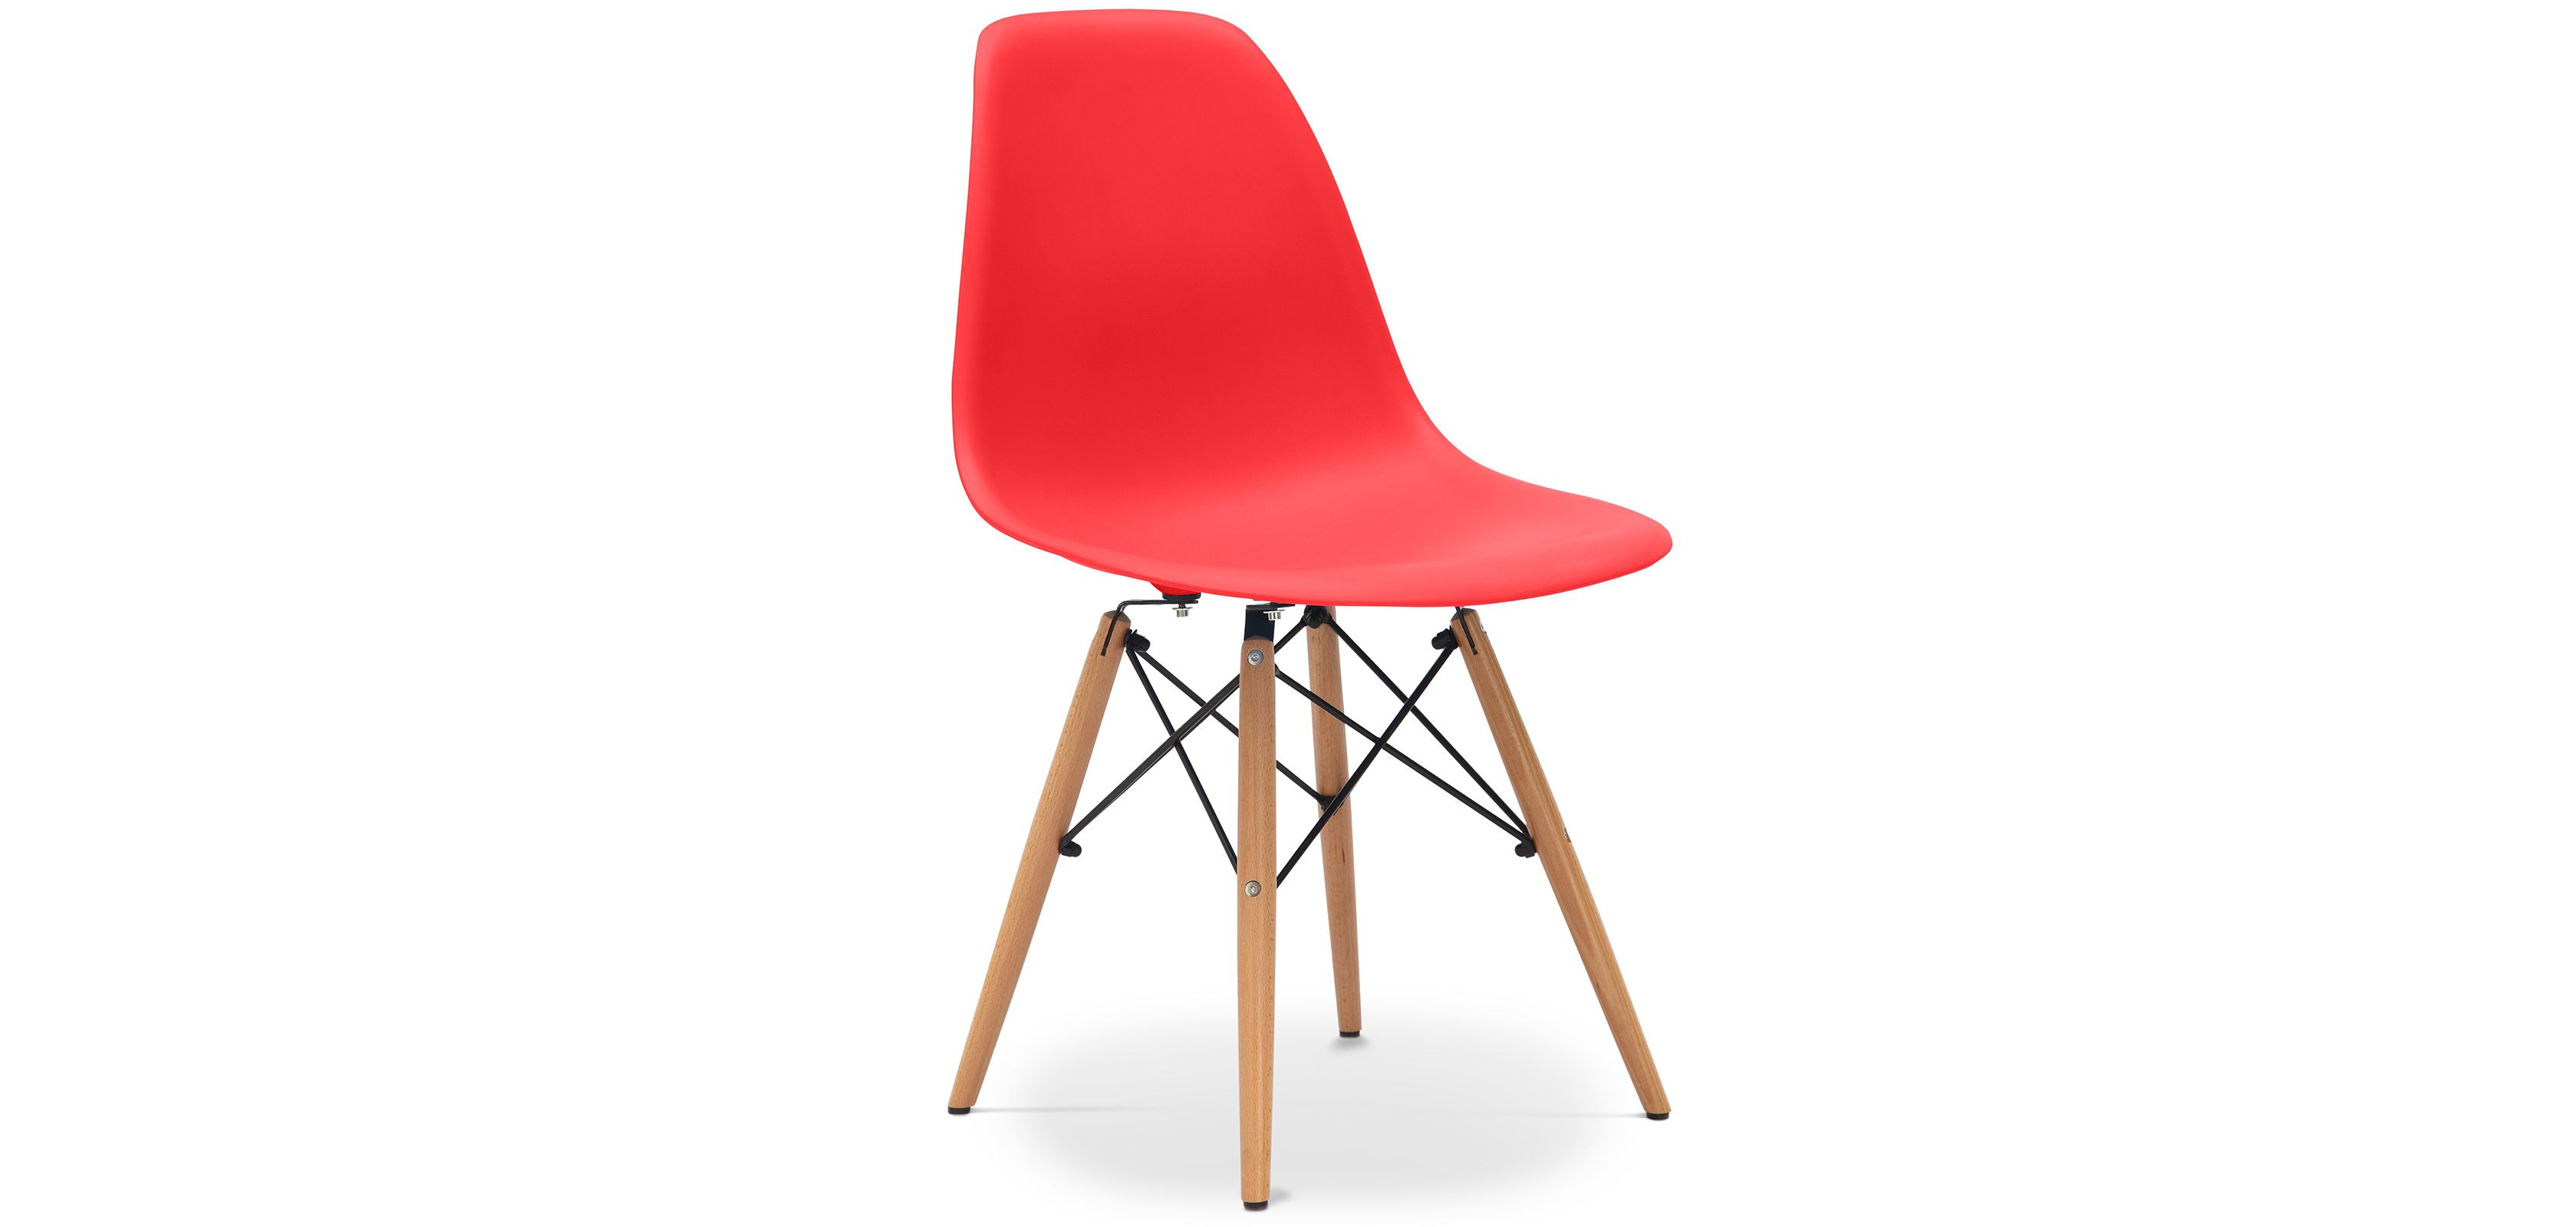 chaise dsw charles eames style - polypropylène matt | ideas for ... - Chaise Dsw Charles Eames